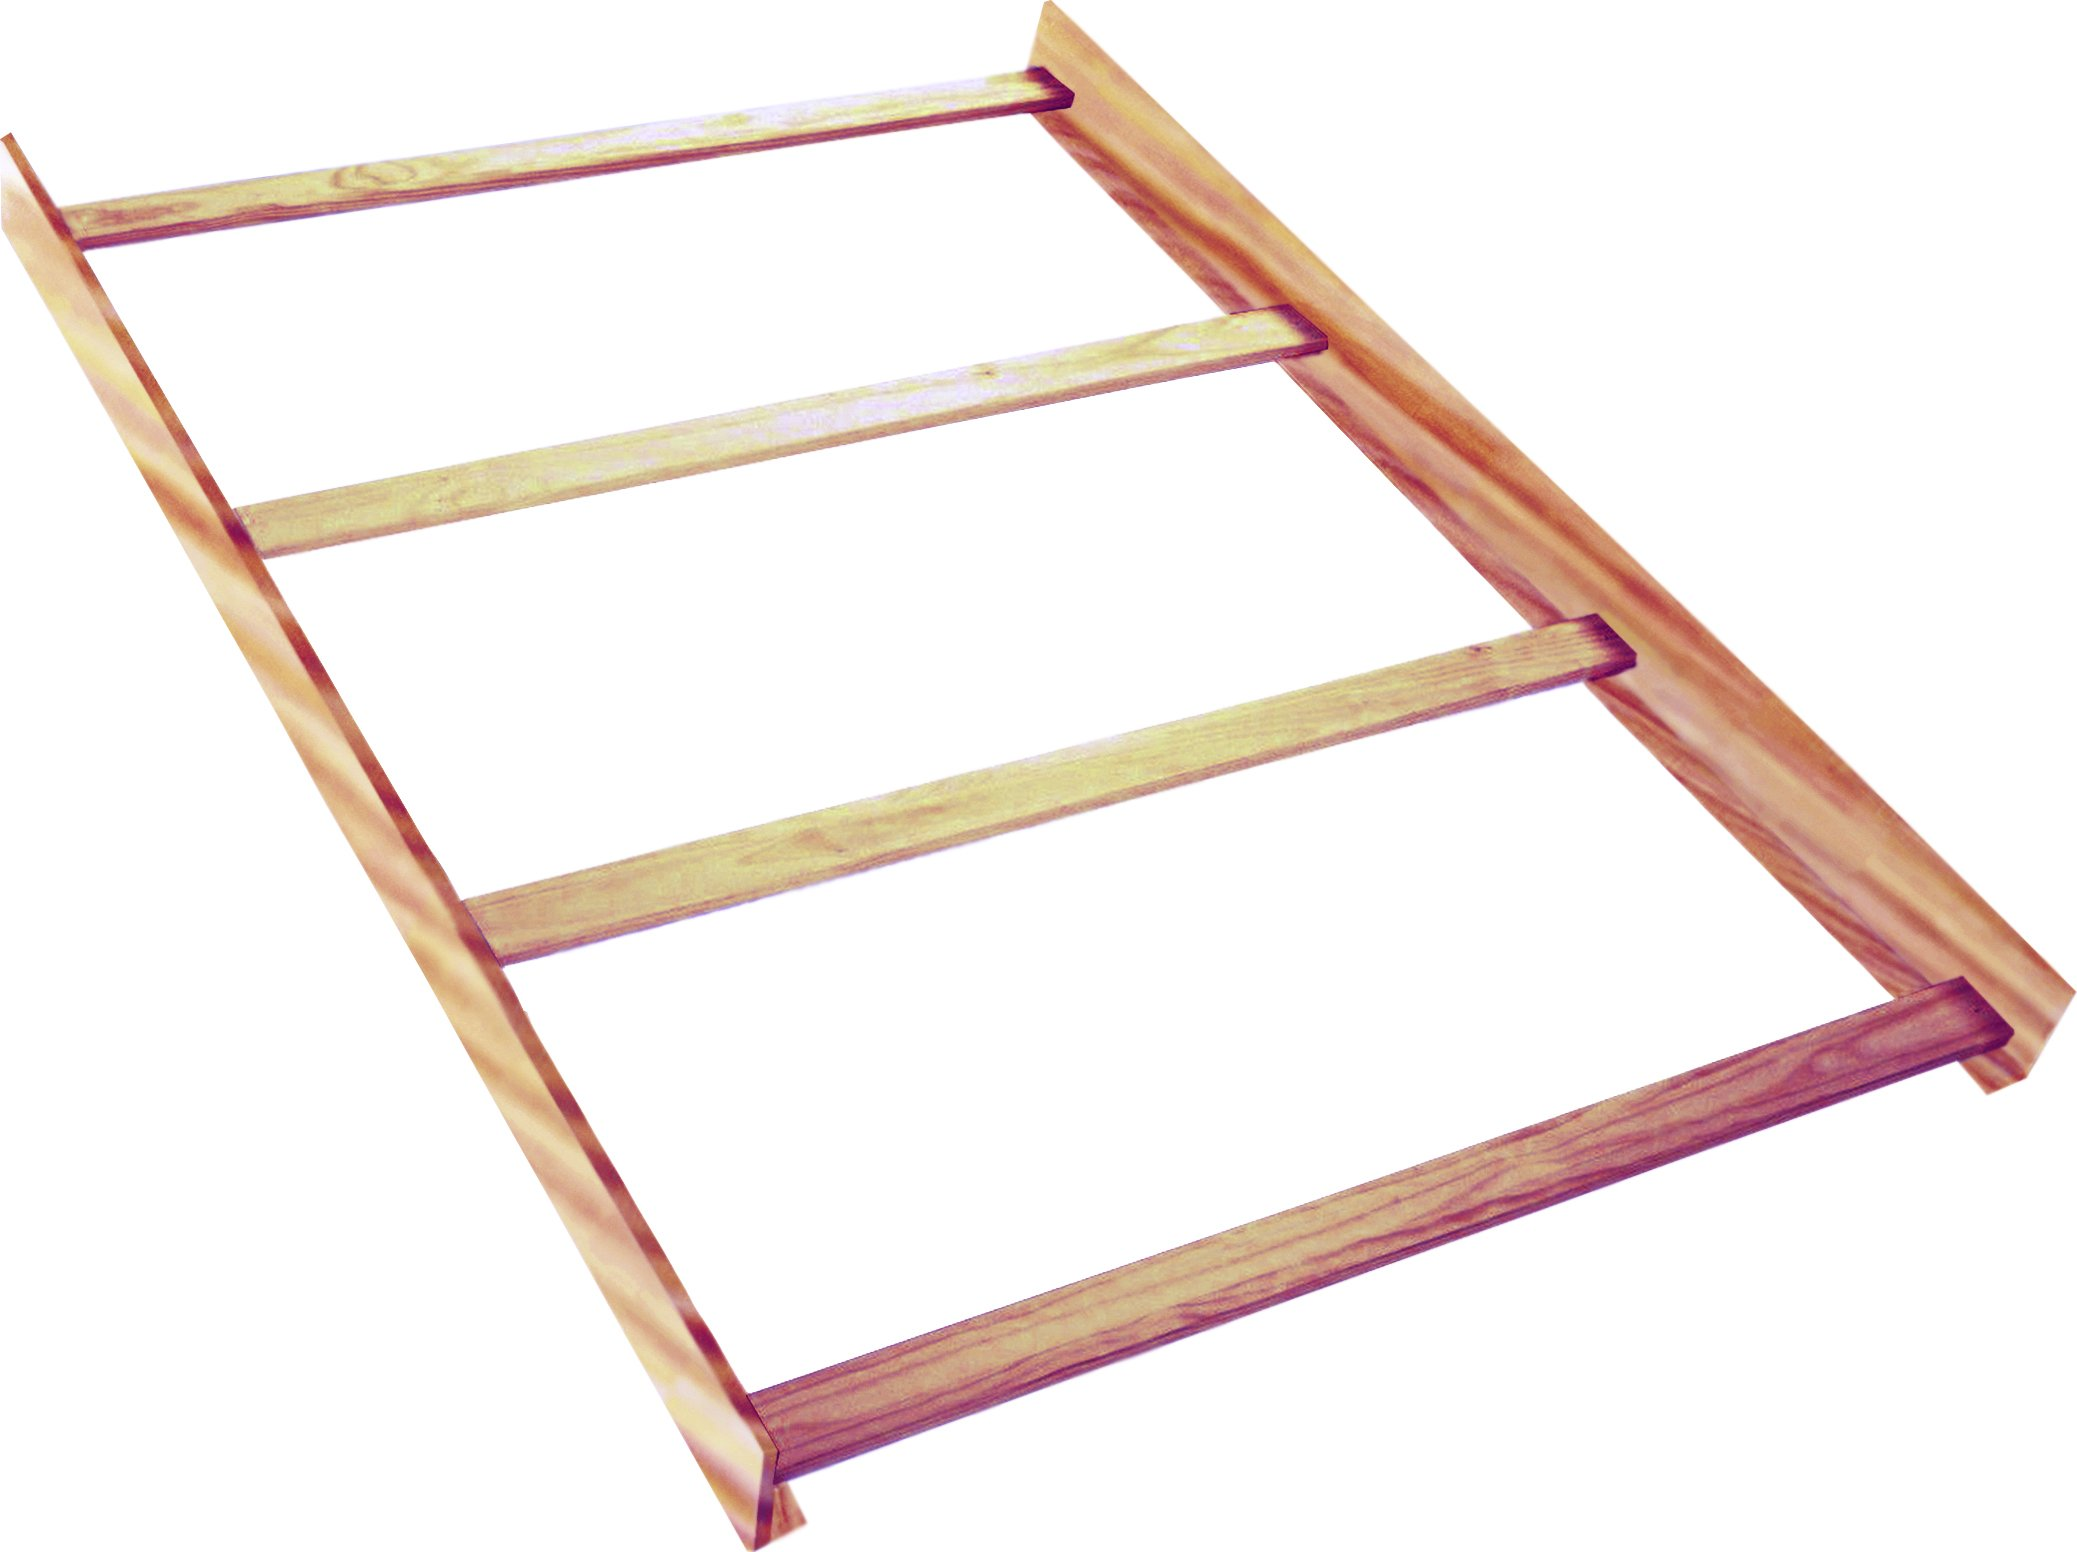 Full Size Conversion Kit Bed Rails for Baby Cache Kensington Cribs - Natural